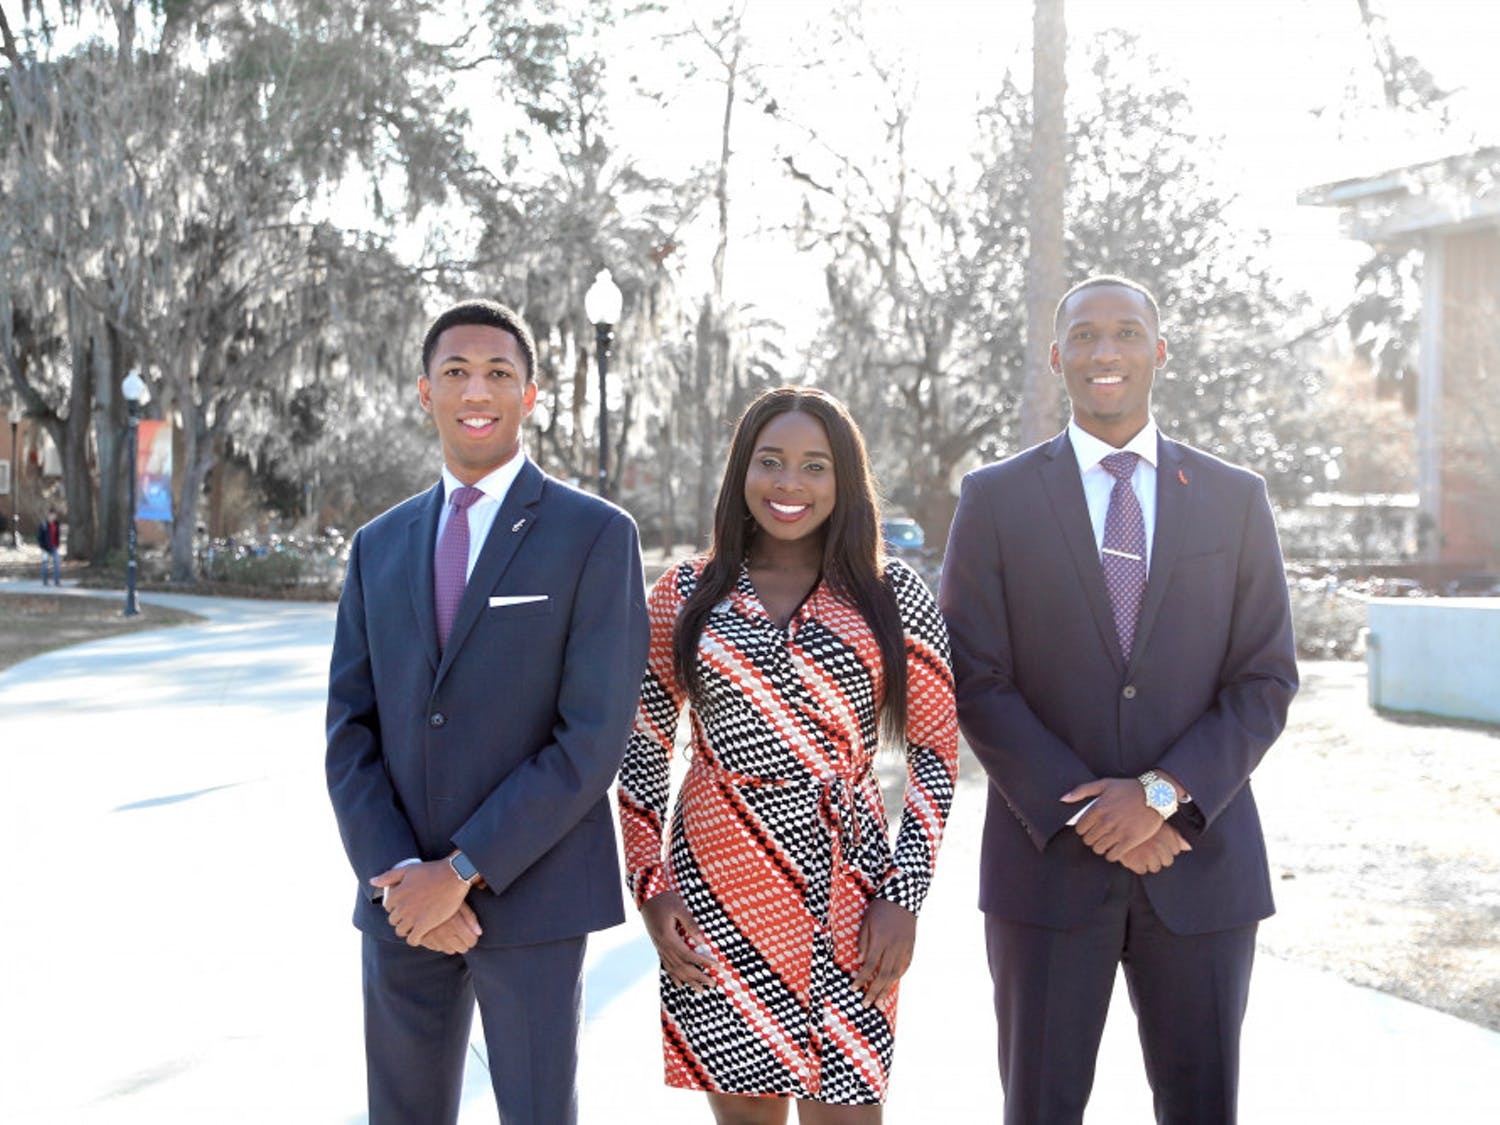 From left: Ian Green, Janae Moodie and Revel Lubin. The three black student candidates are running for student body president in a three-party race.